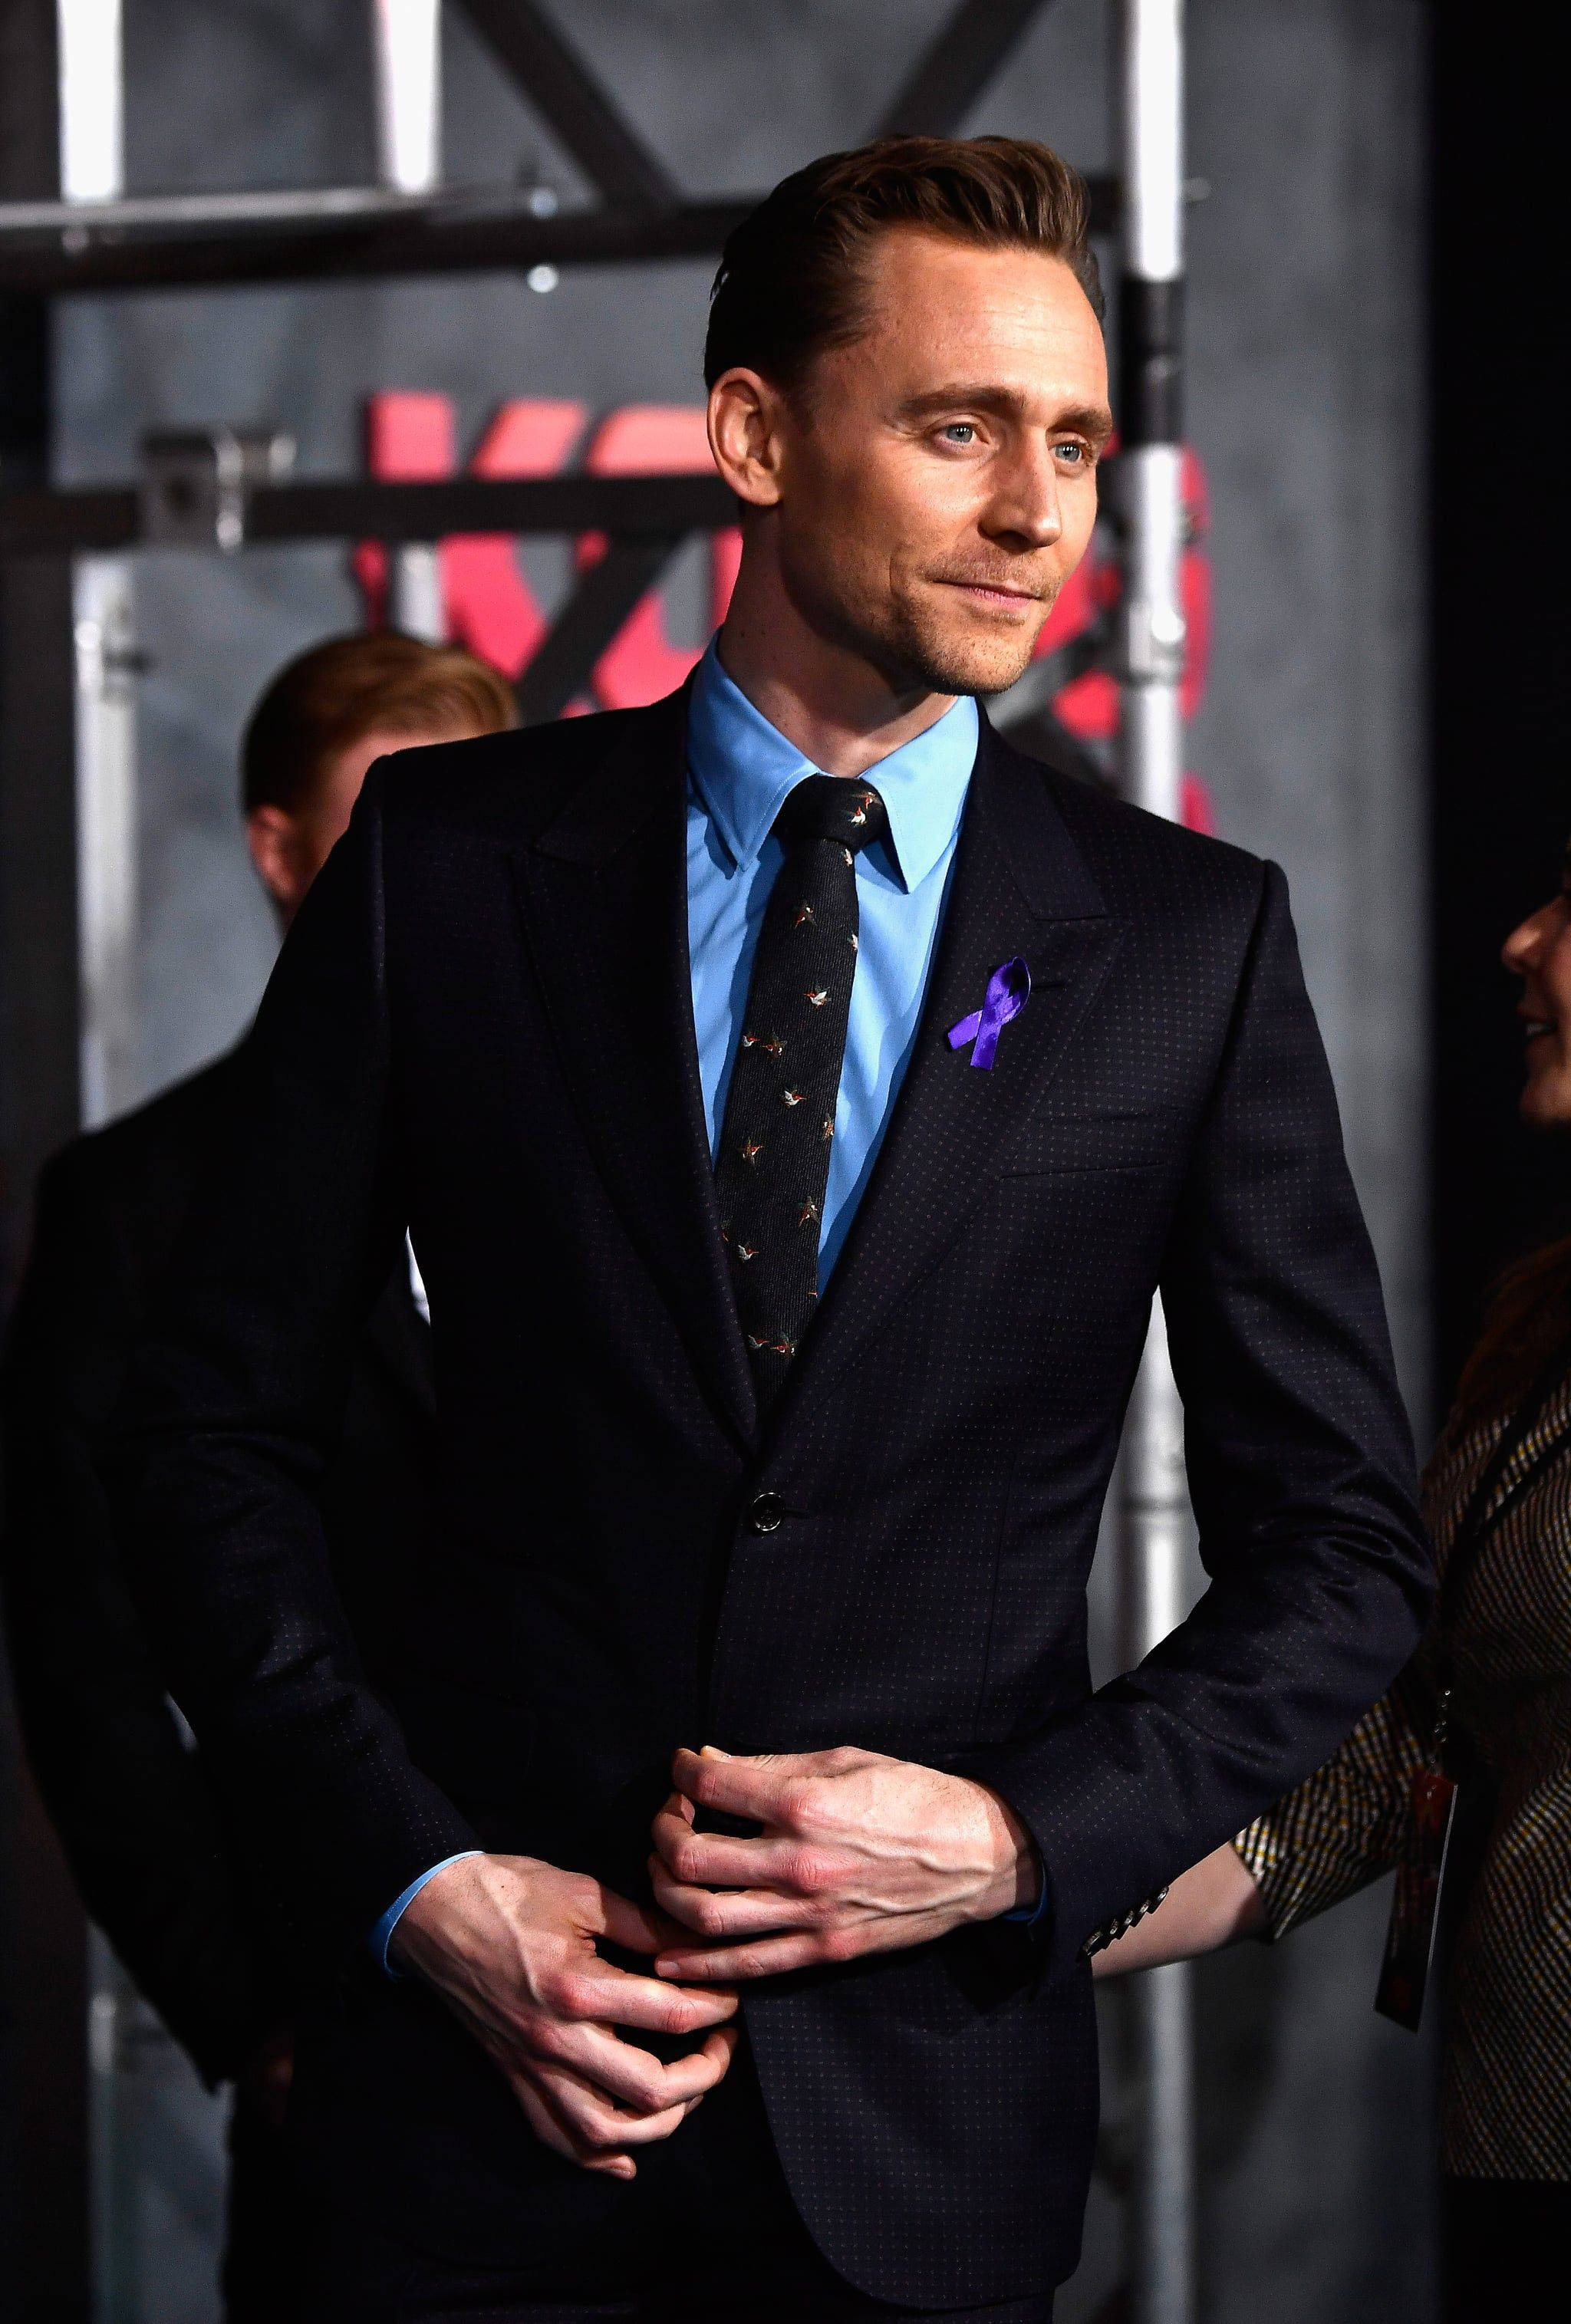 Photo of 46 Pictures of Tom Hiddleston That Are Way Too Hot to Handle